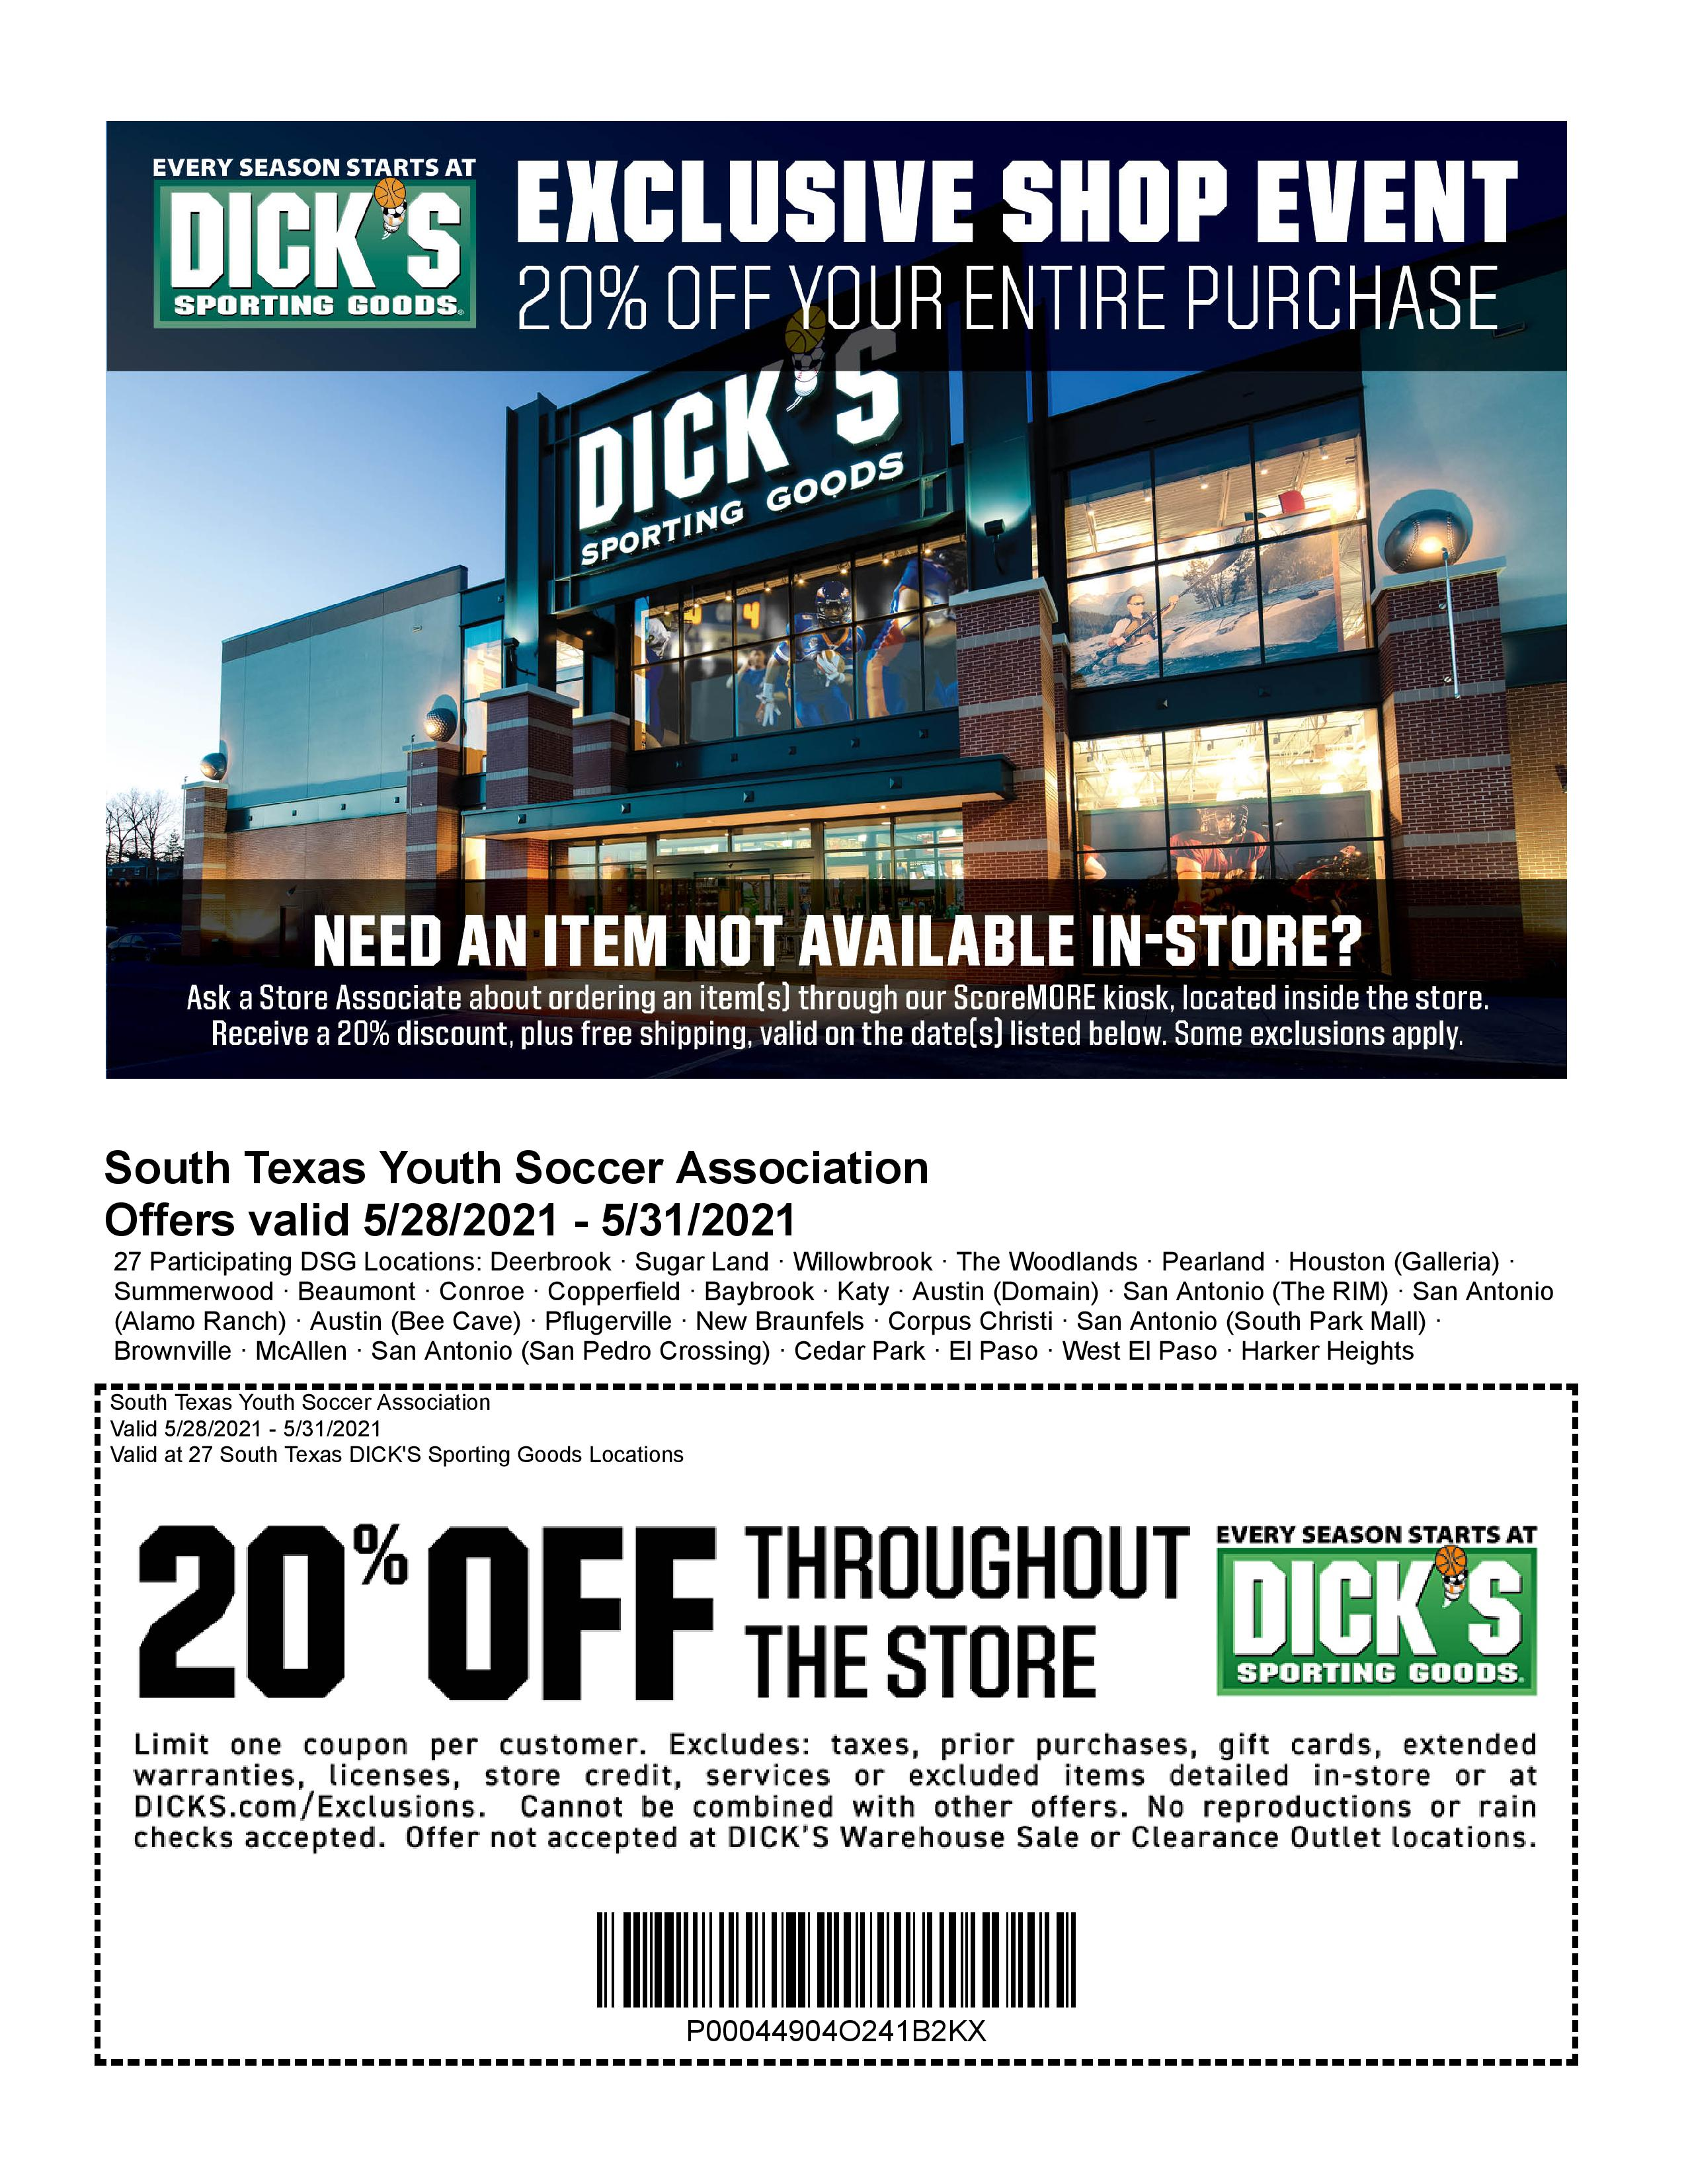 Dick's Sporting Goods Memorial Day Coupon for STX Youth Soccer Members!